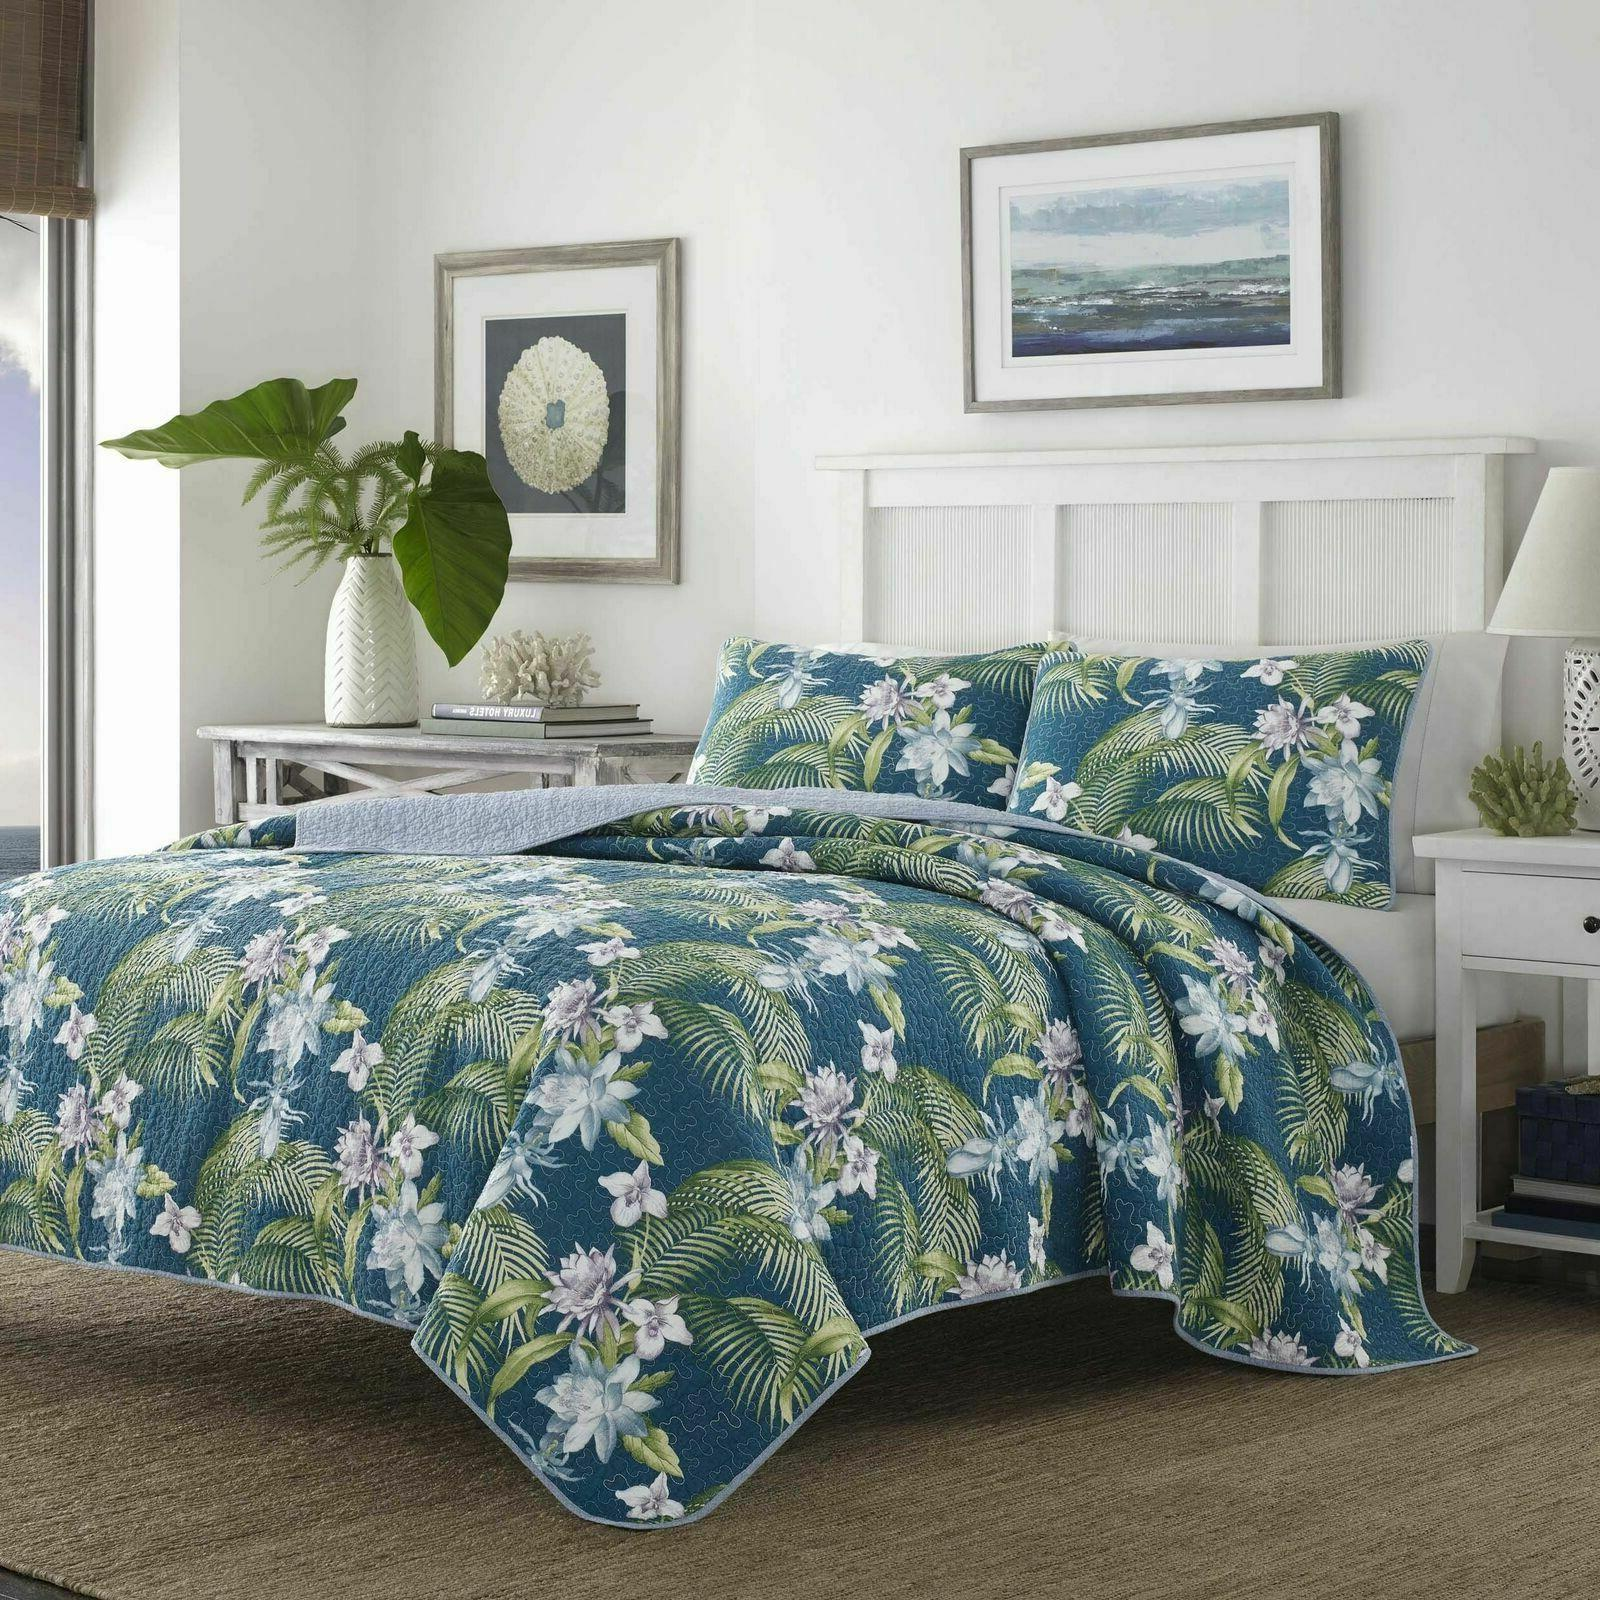 southern breeze 3pc full queen quilt set